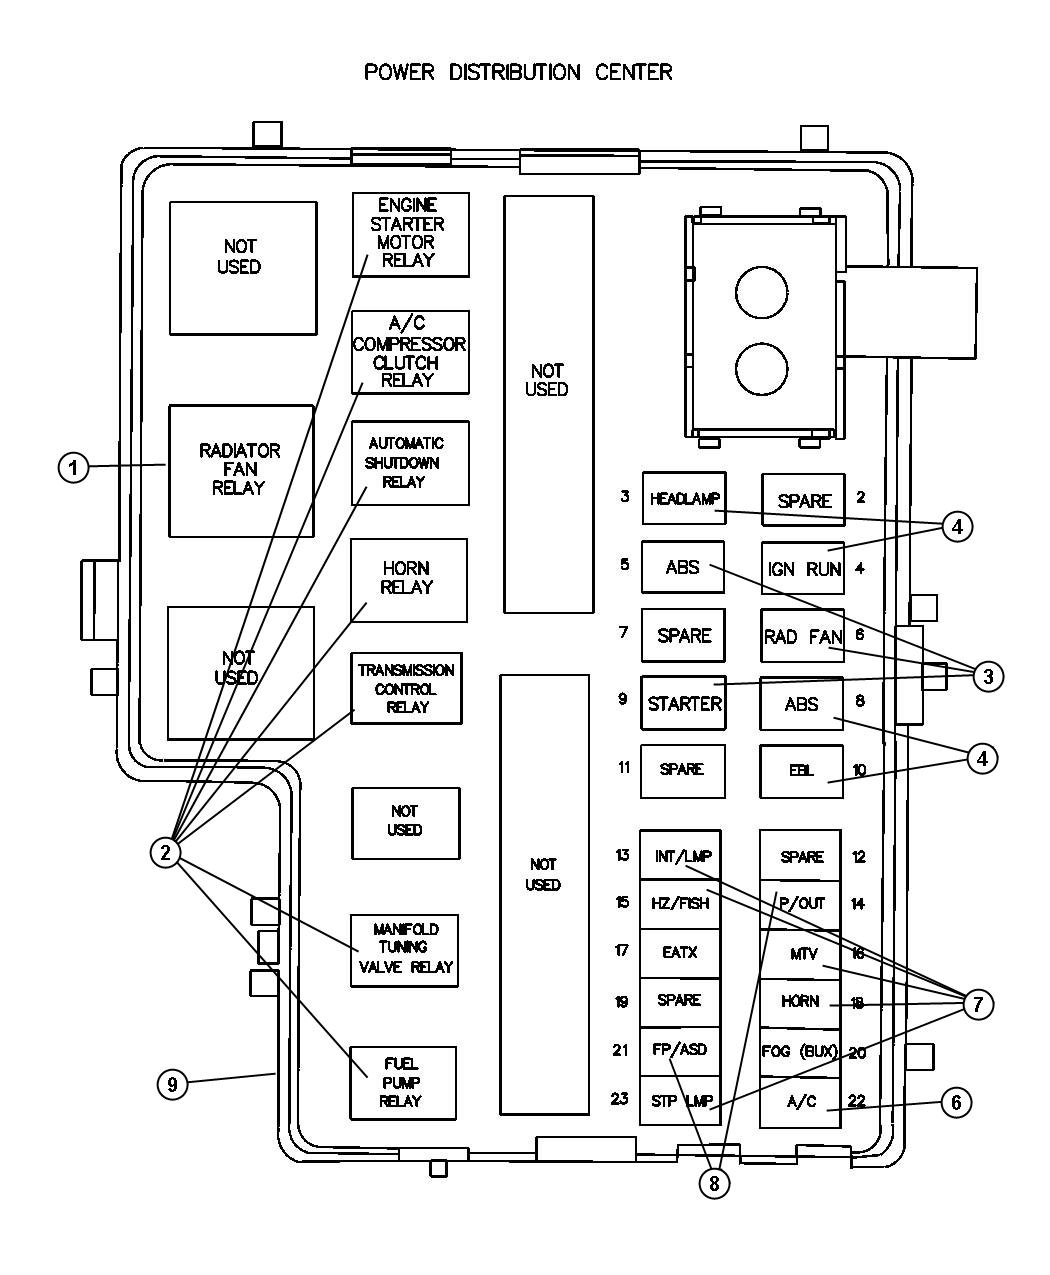 hight resolution of dodge neon fog light wiring diagram get free image about wiring diagram 1992